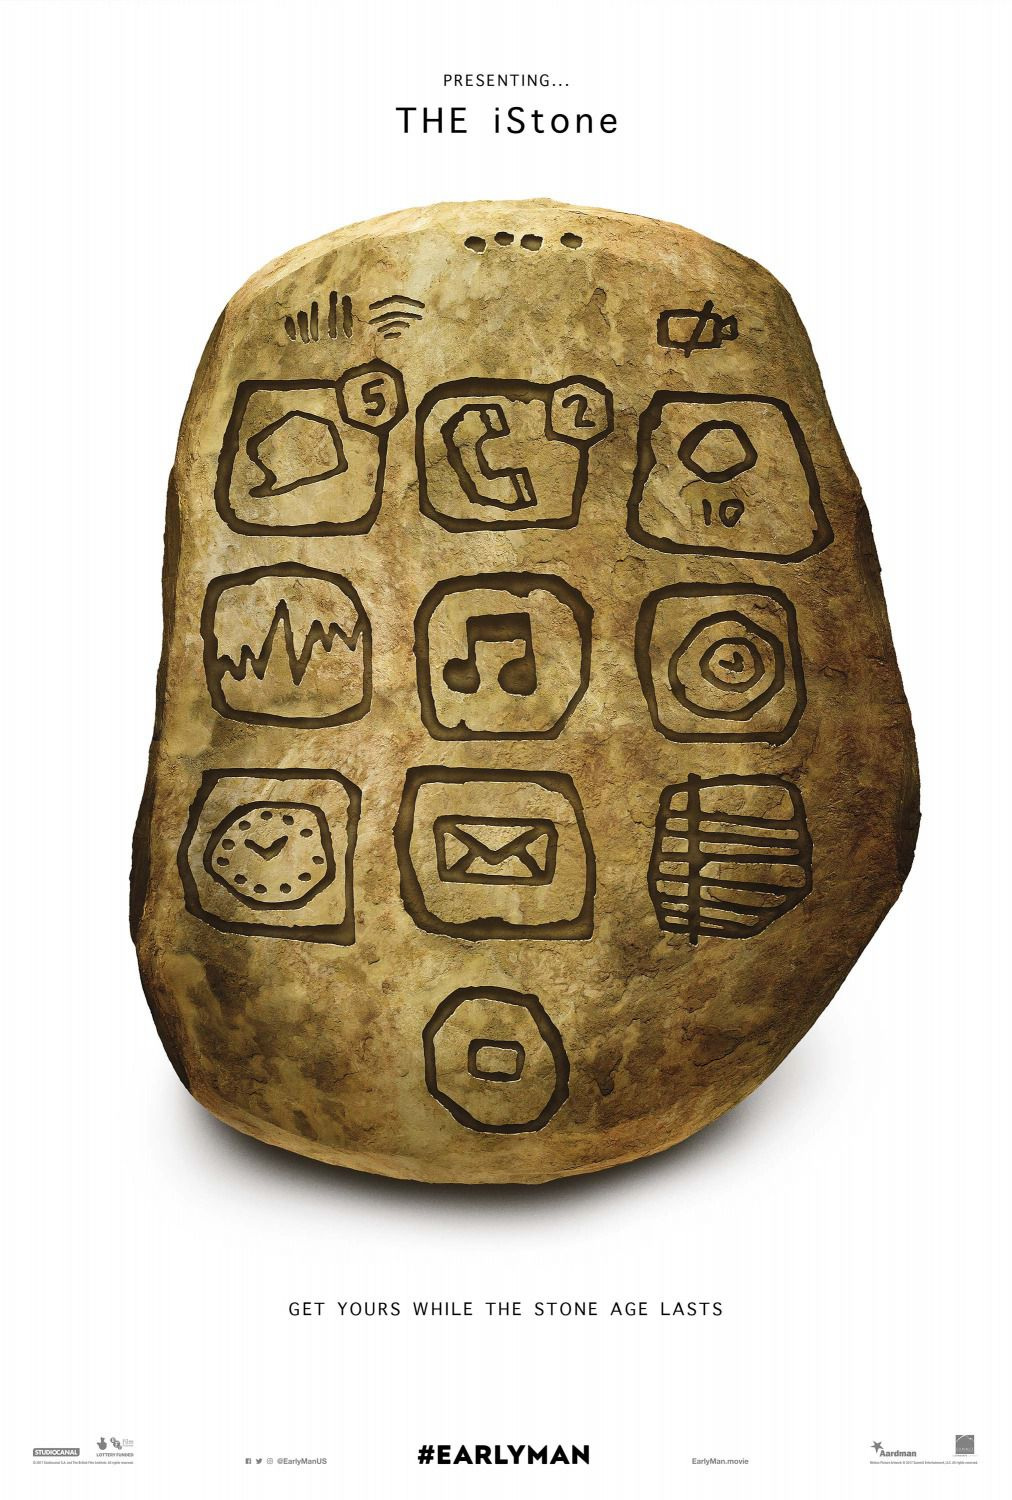 Stone Age monolith pietro rock message cell phone